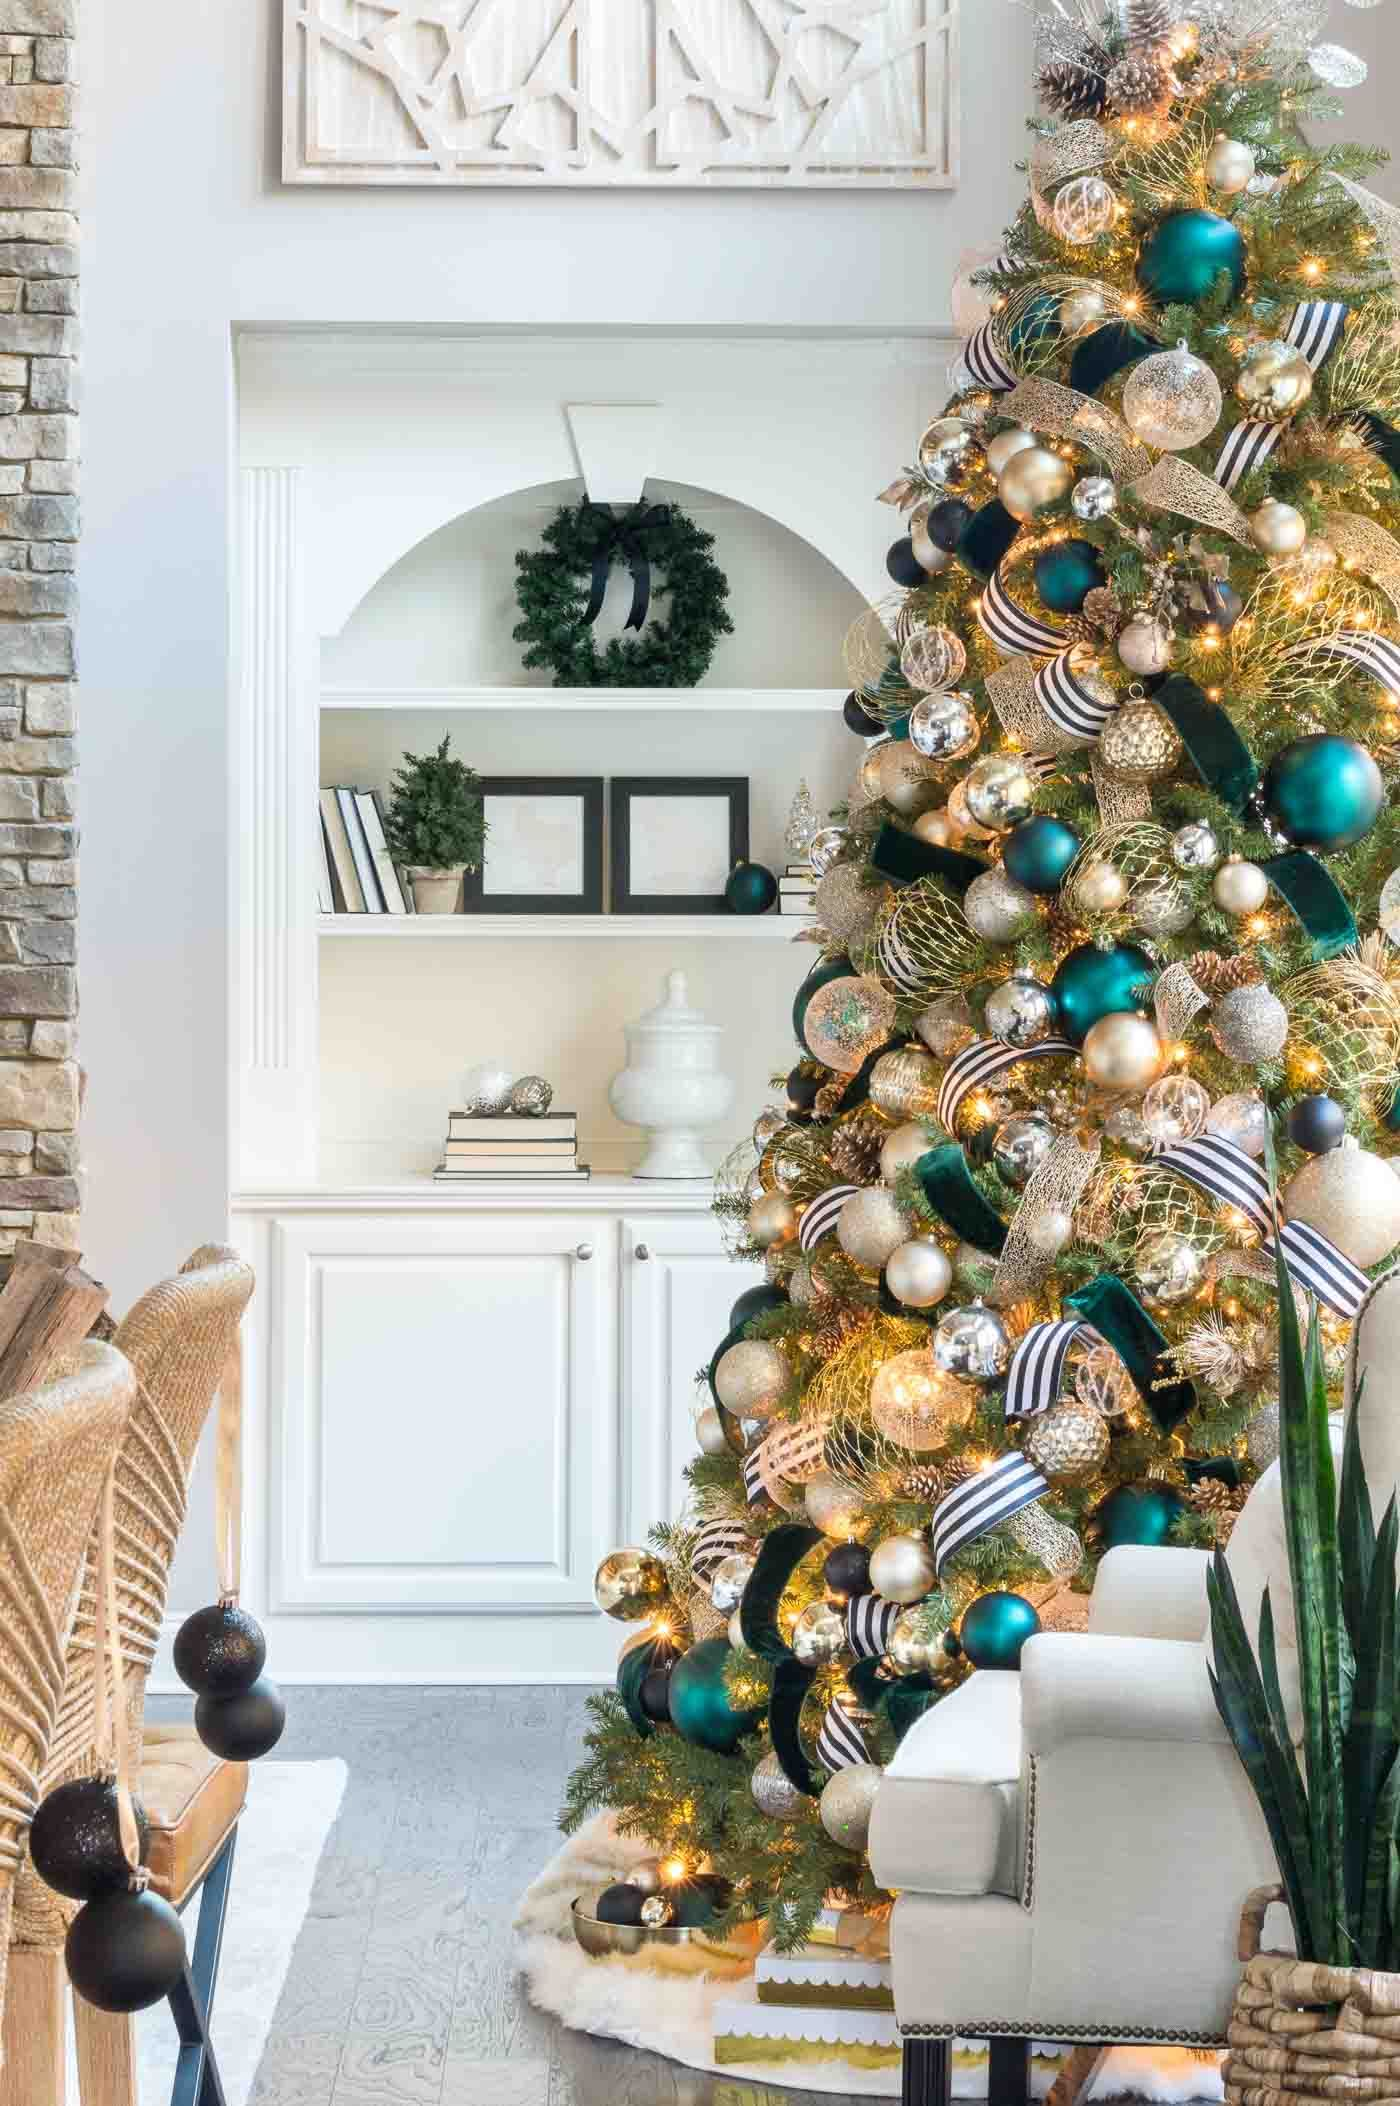 Christmas Home Tour Holiday Decorations and Unique Color